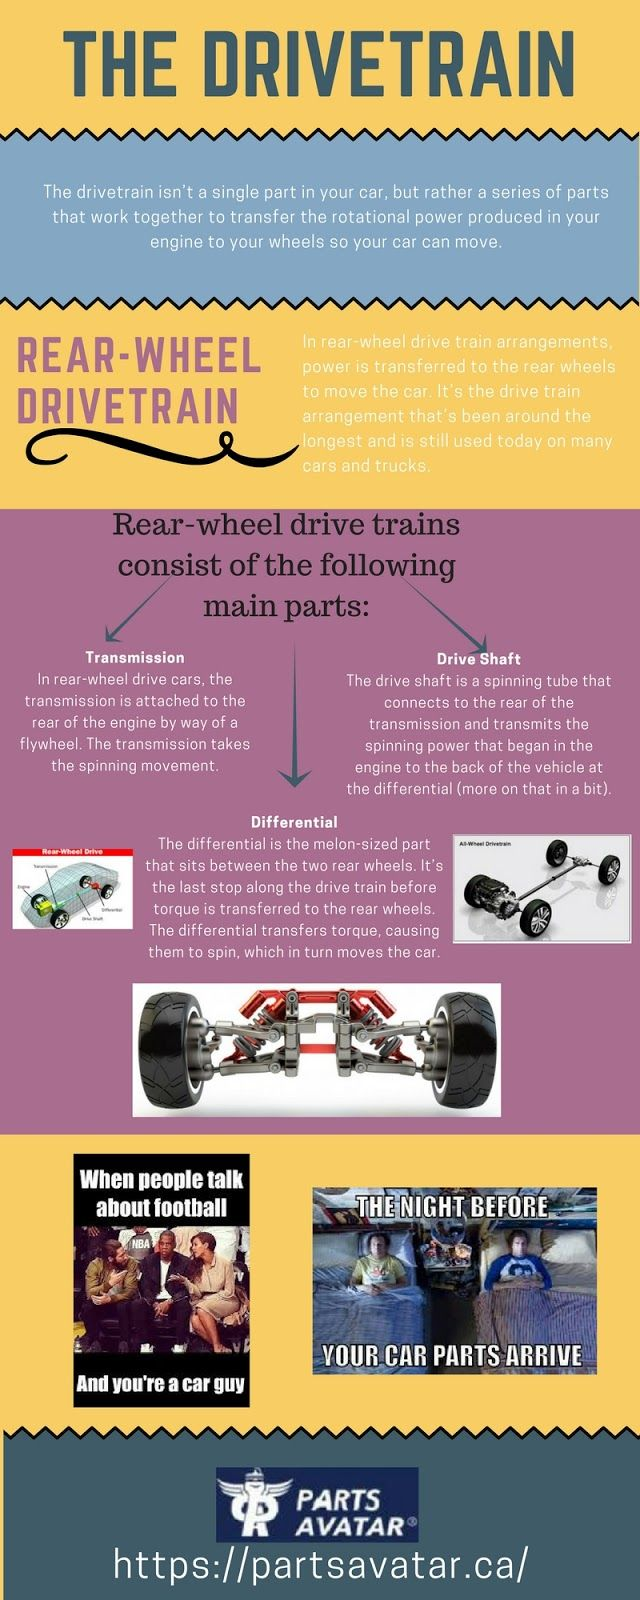 Do you know about Drivetrain ?? Dont have any idea?? then check out this interesting infographic and get some knowledge about this hidden component of car !! Is your car drive train damaged? Want to buy new car body parts at affordable prices? Say no more! Partsavatar.ca is here at your service.  If you're on the hunt for an online car parts store that has everything that you need, then look no further than Partsavatar.ca!  Whatever your car's